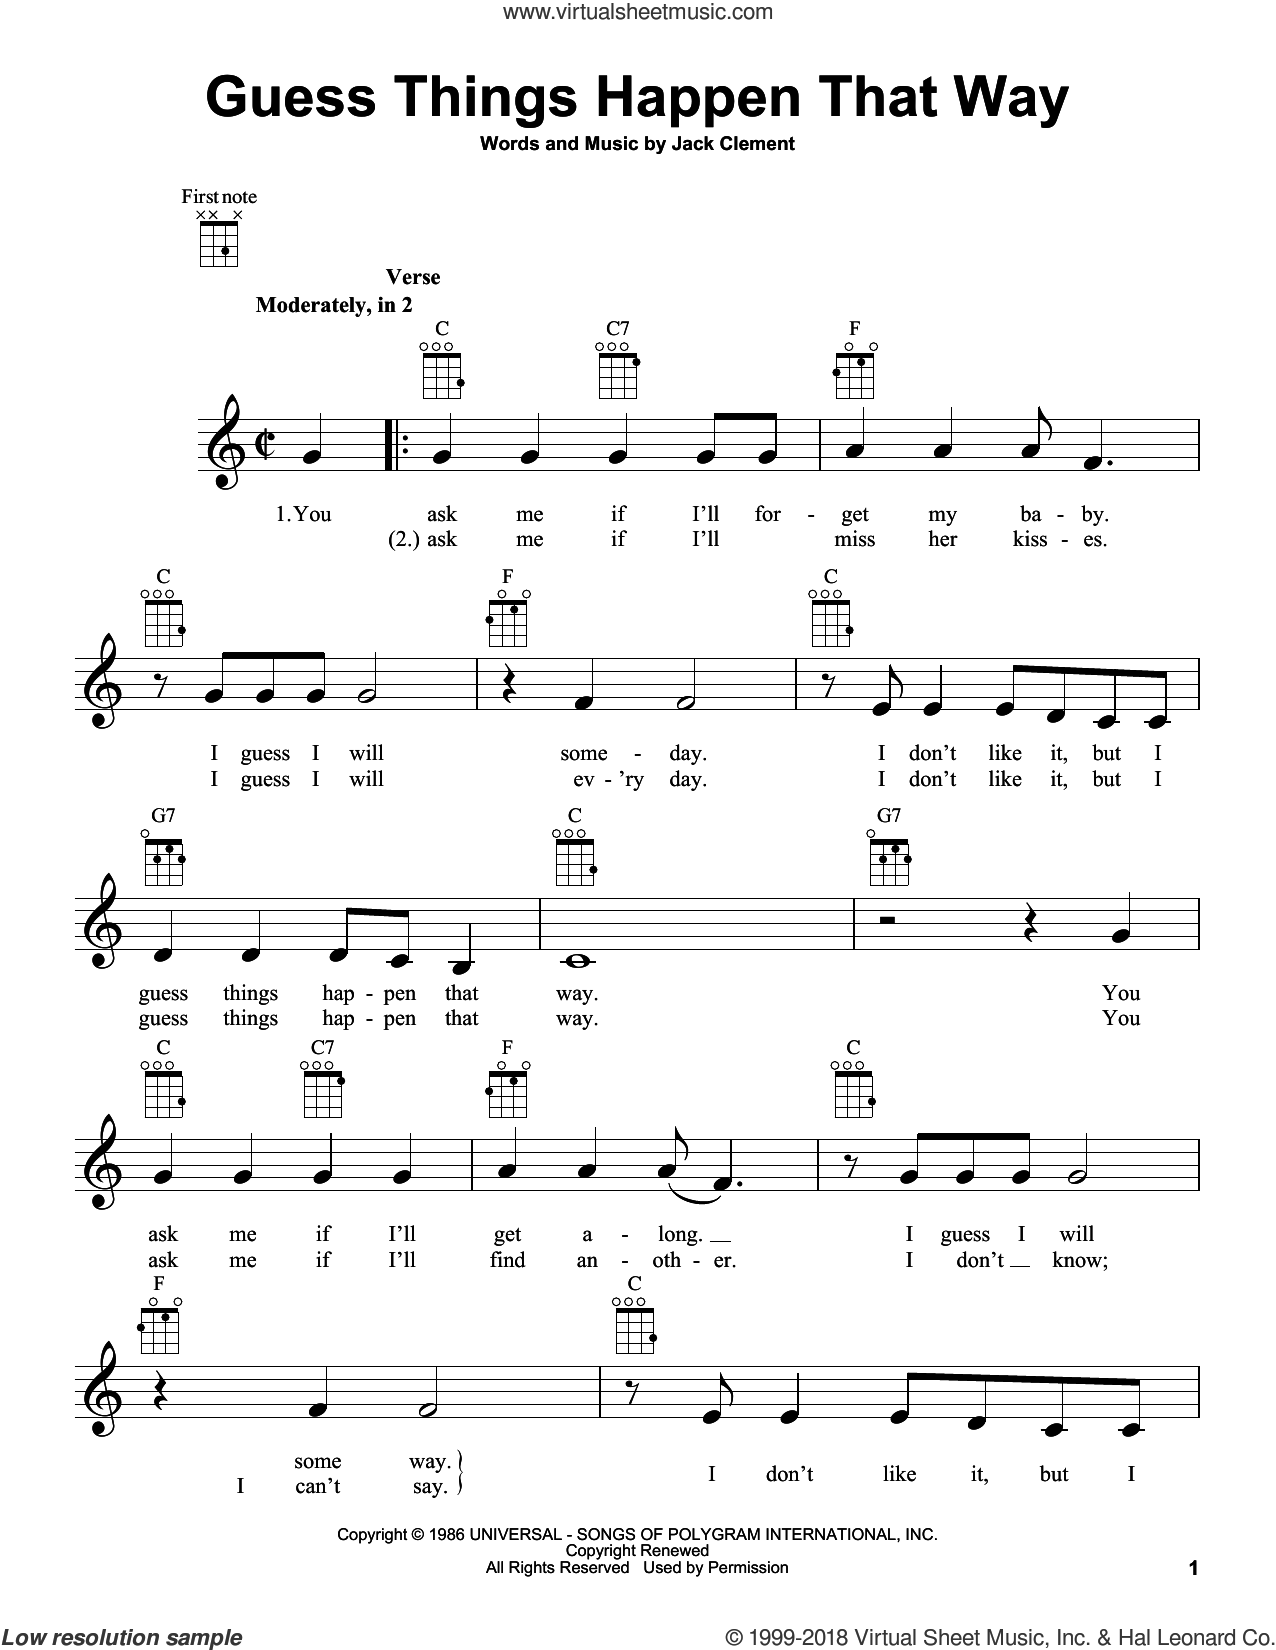 Guess Things Happen That Way sheet music for ukulele by Jack Clement and Johnny Cash. Score Image Preview.